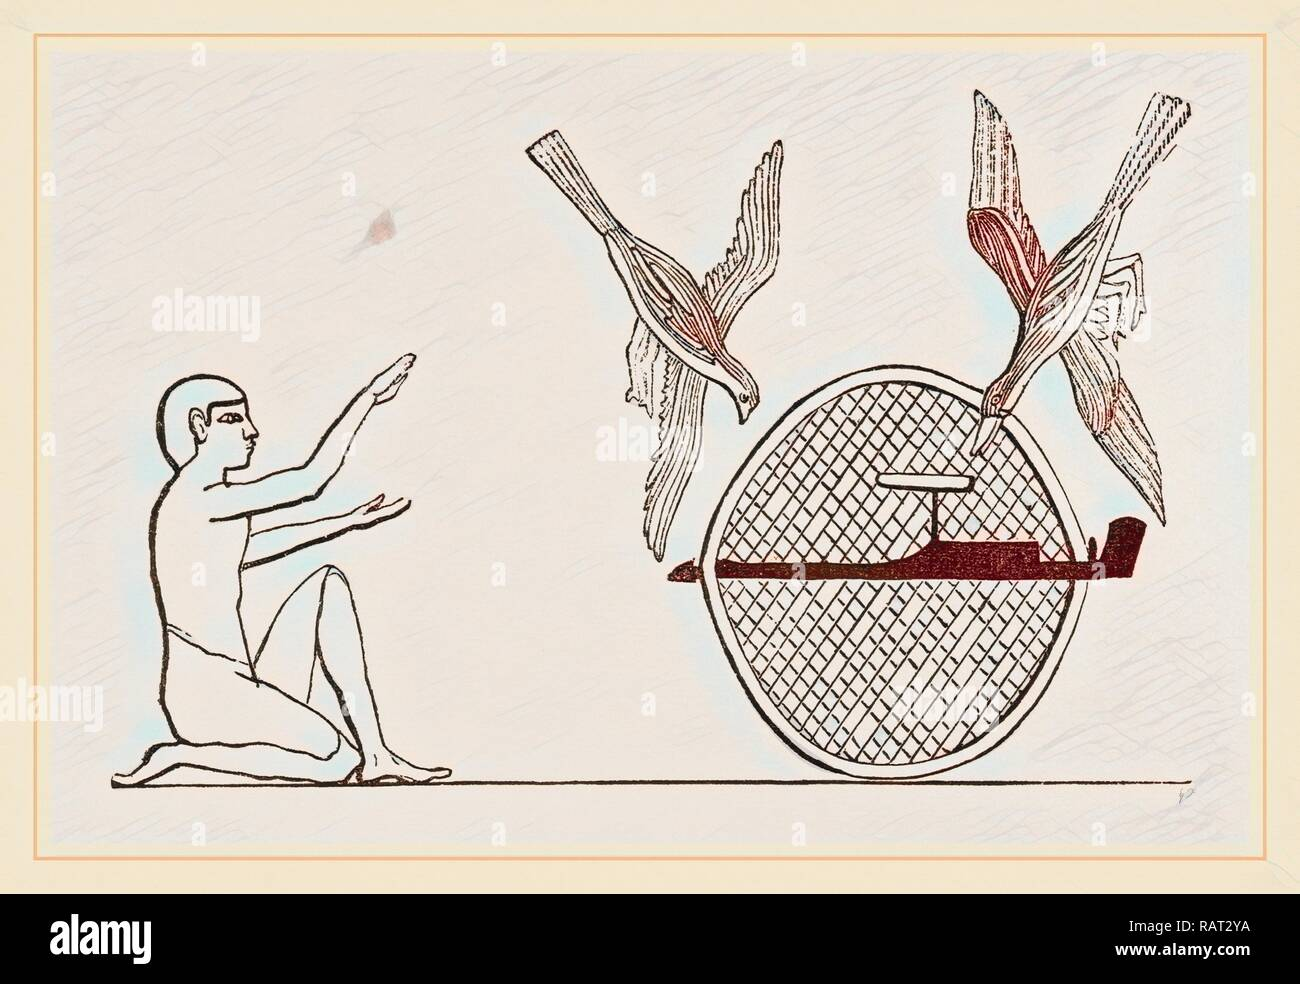 Clap-net of Ancient Egyptians for Bird-catching, Egypt. Reimagined by Gibon. Classic art with a modern twist reimagined - Stock Image